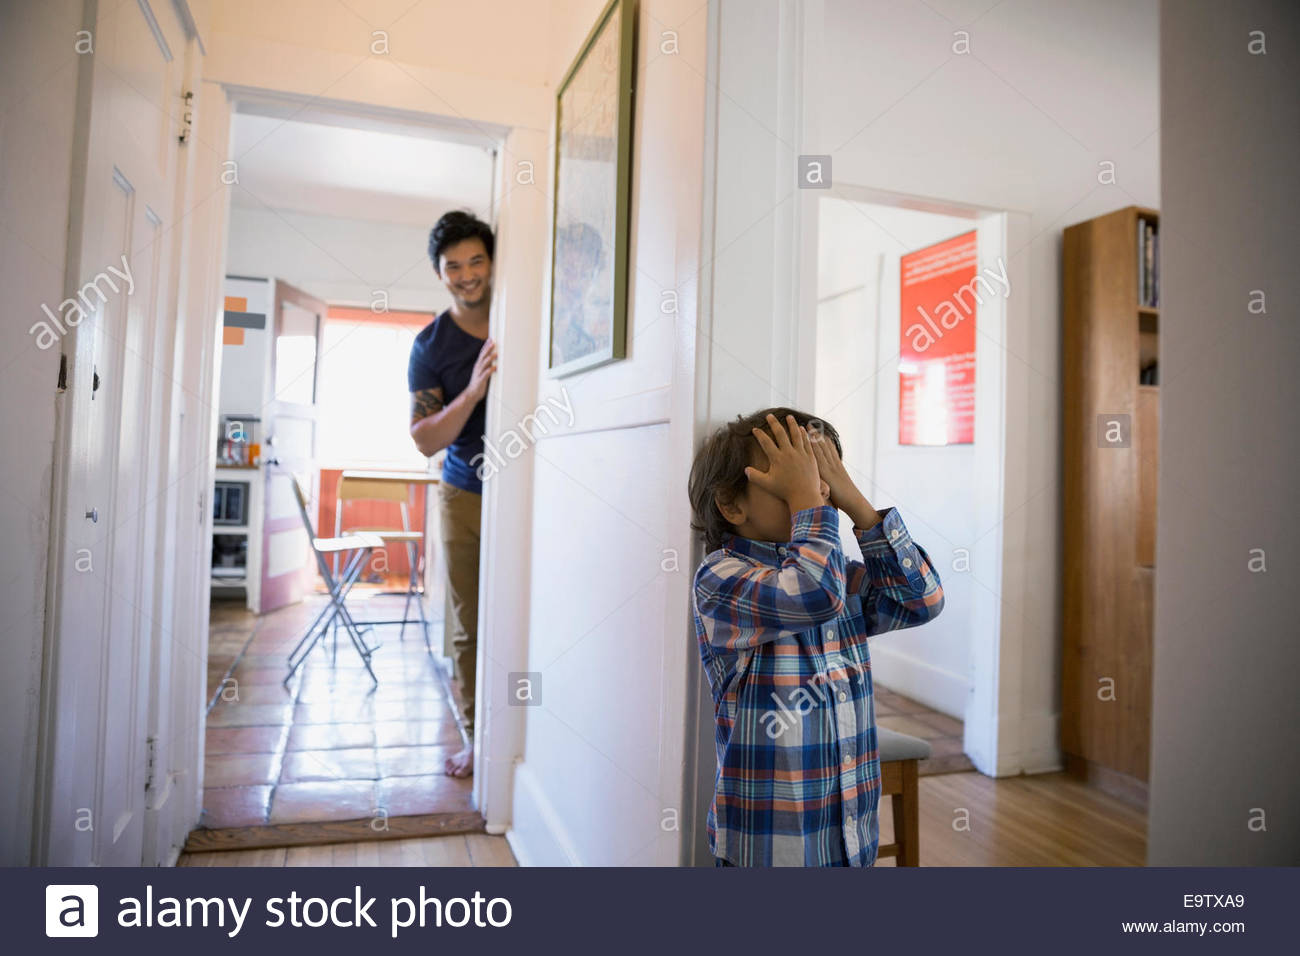 Hide And Seek Stock Photos Hide And Seek Stock Images Alamy